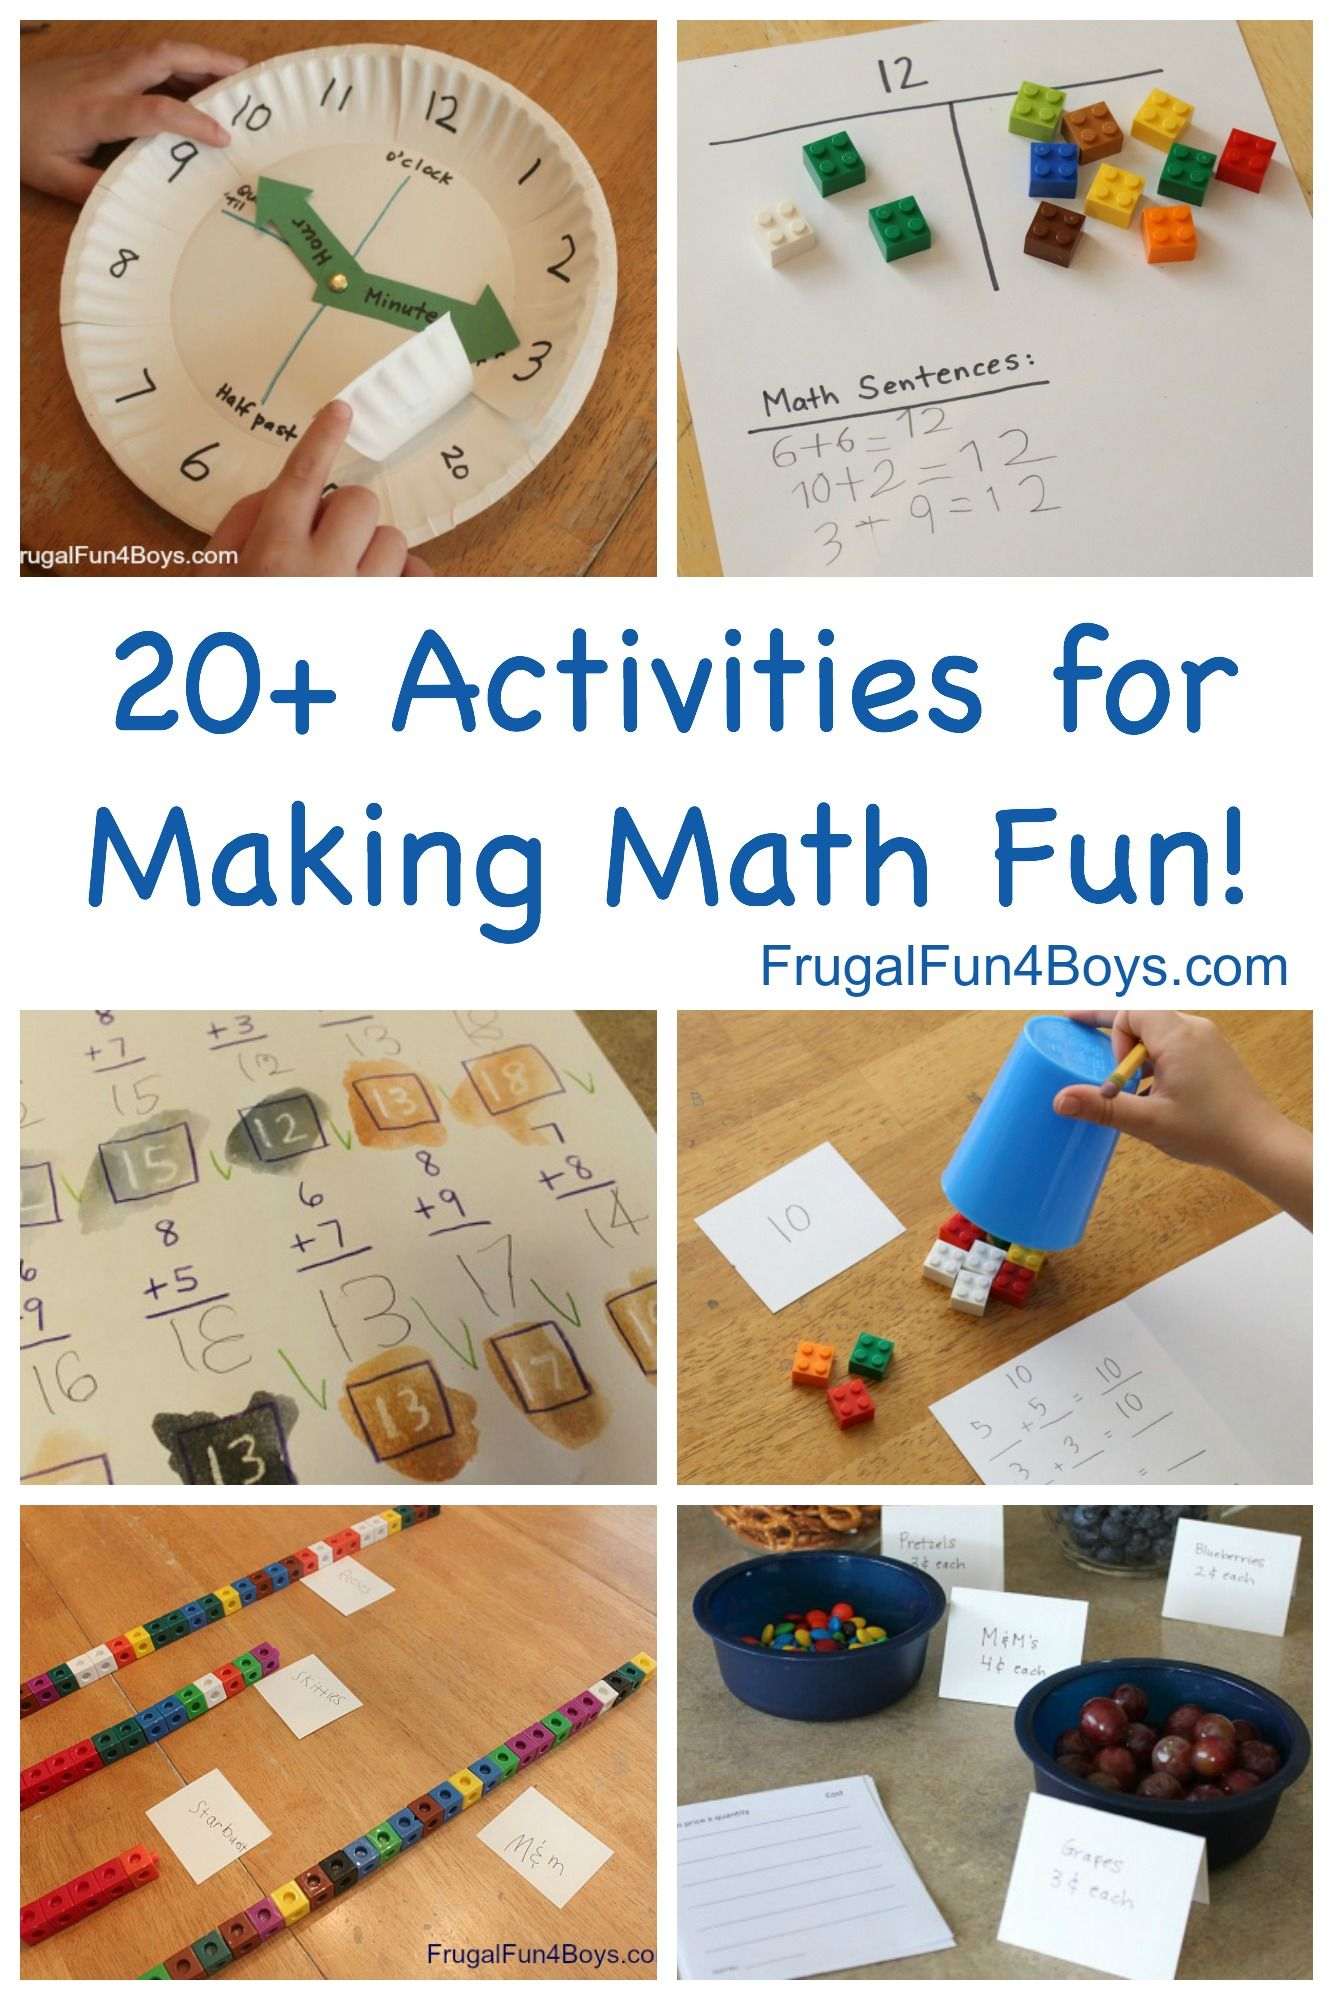 Hands On Math Activities For Making Elementary Math Fun Frugal Fun For Boys And Girls Math Activities Elementary Elementary Math Fun Math